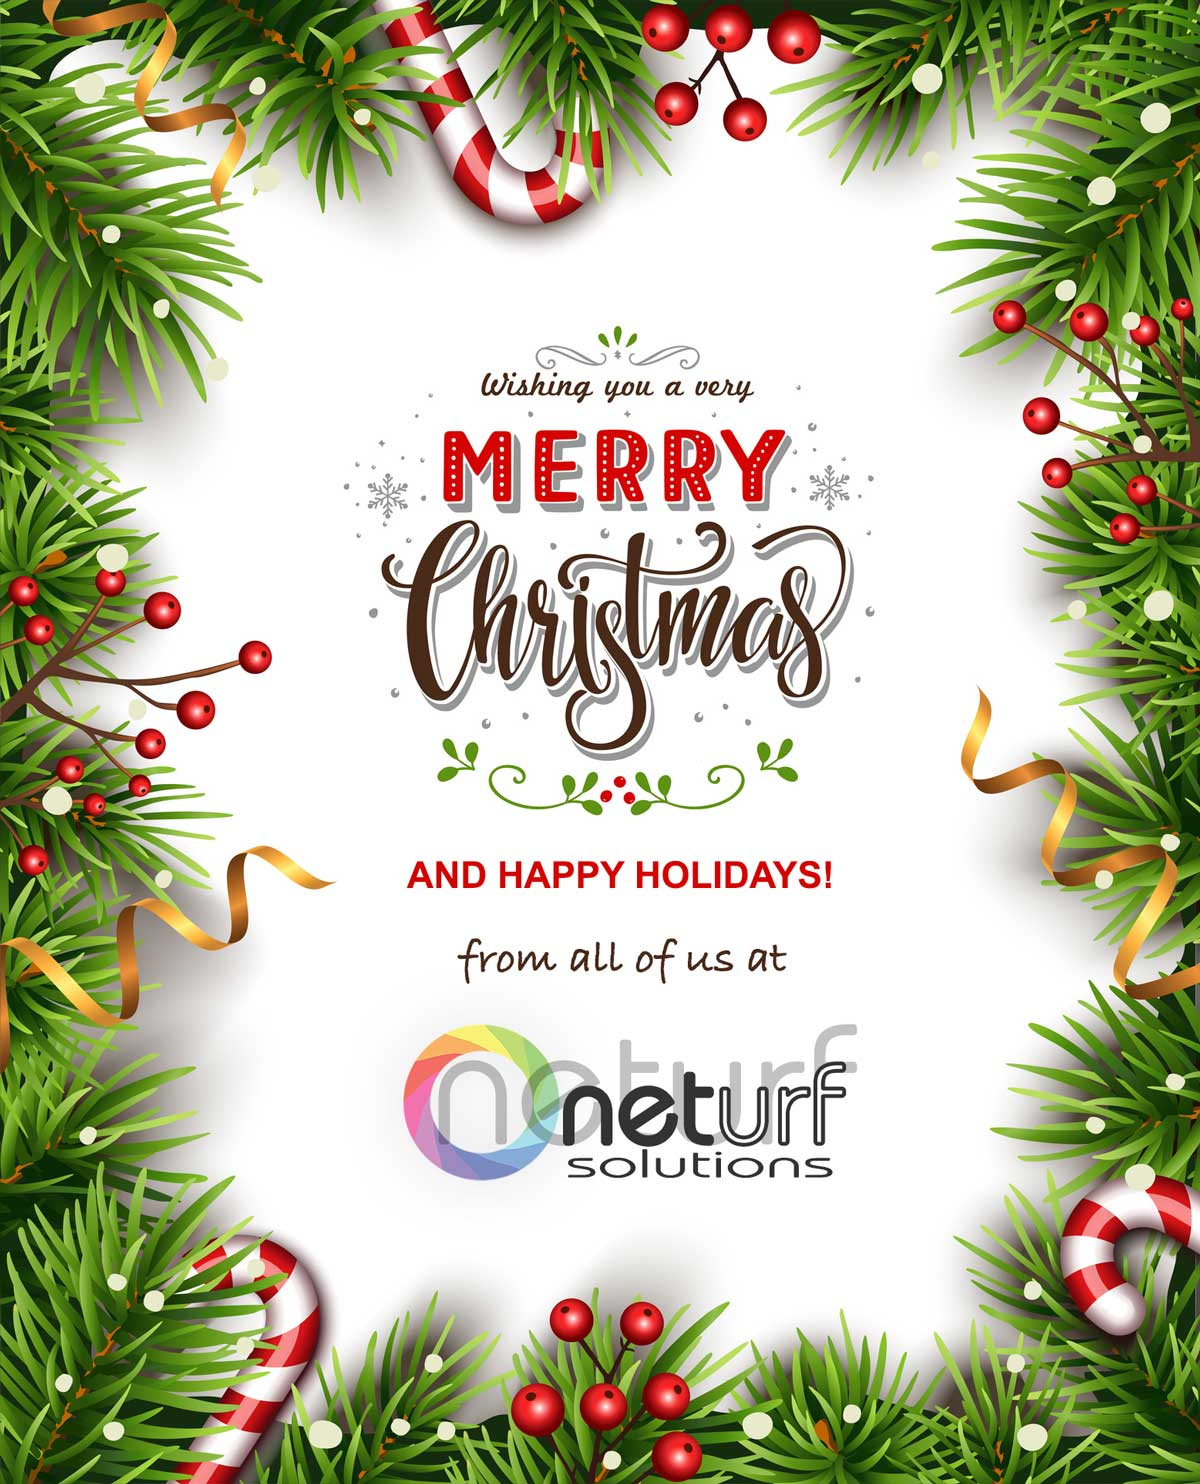 Merry Christmas and Happy Holidays from all of us at Advertising Solutions